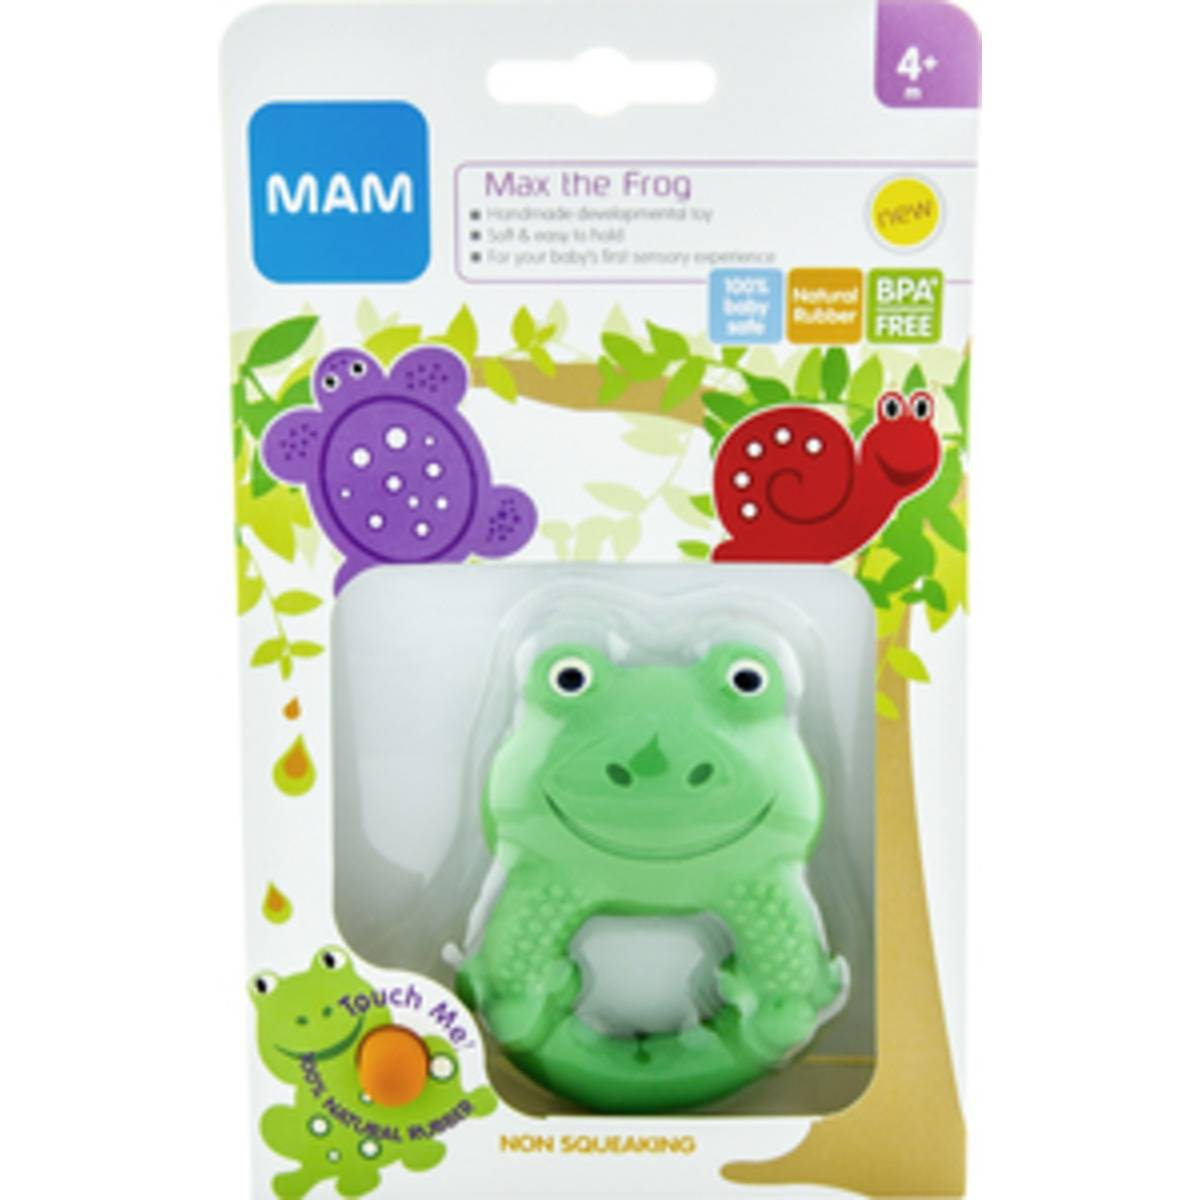 MAM Max The Frog - 1 Stk.